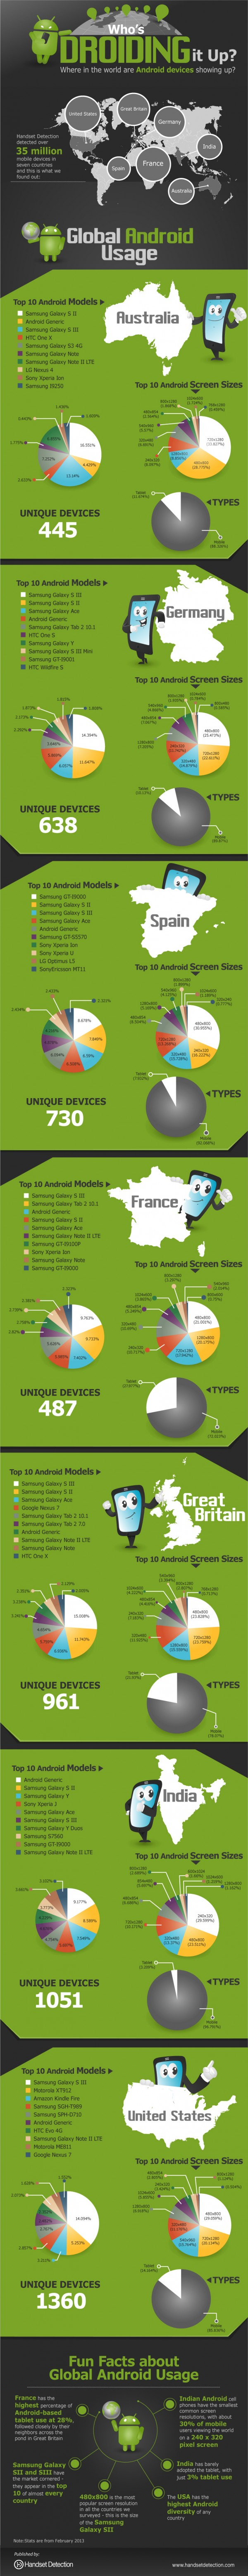 Android stats, Android report, Android 2013, Android sales, Android usage, Use android, Android 2013 use, Android devices 2013, Android phone 2013, Android infographics, best infographics 2013